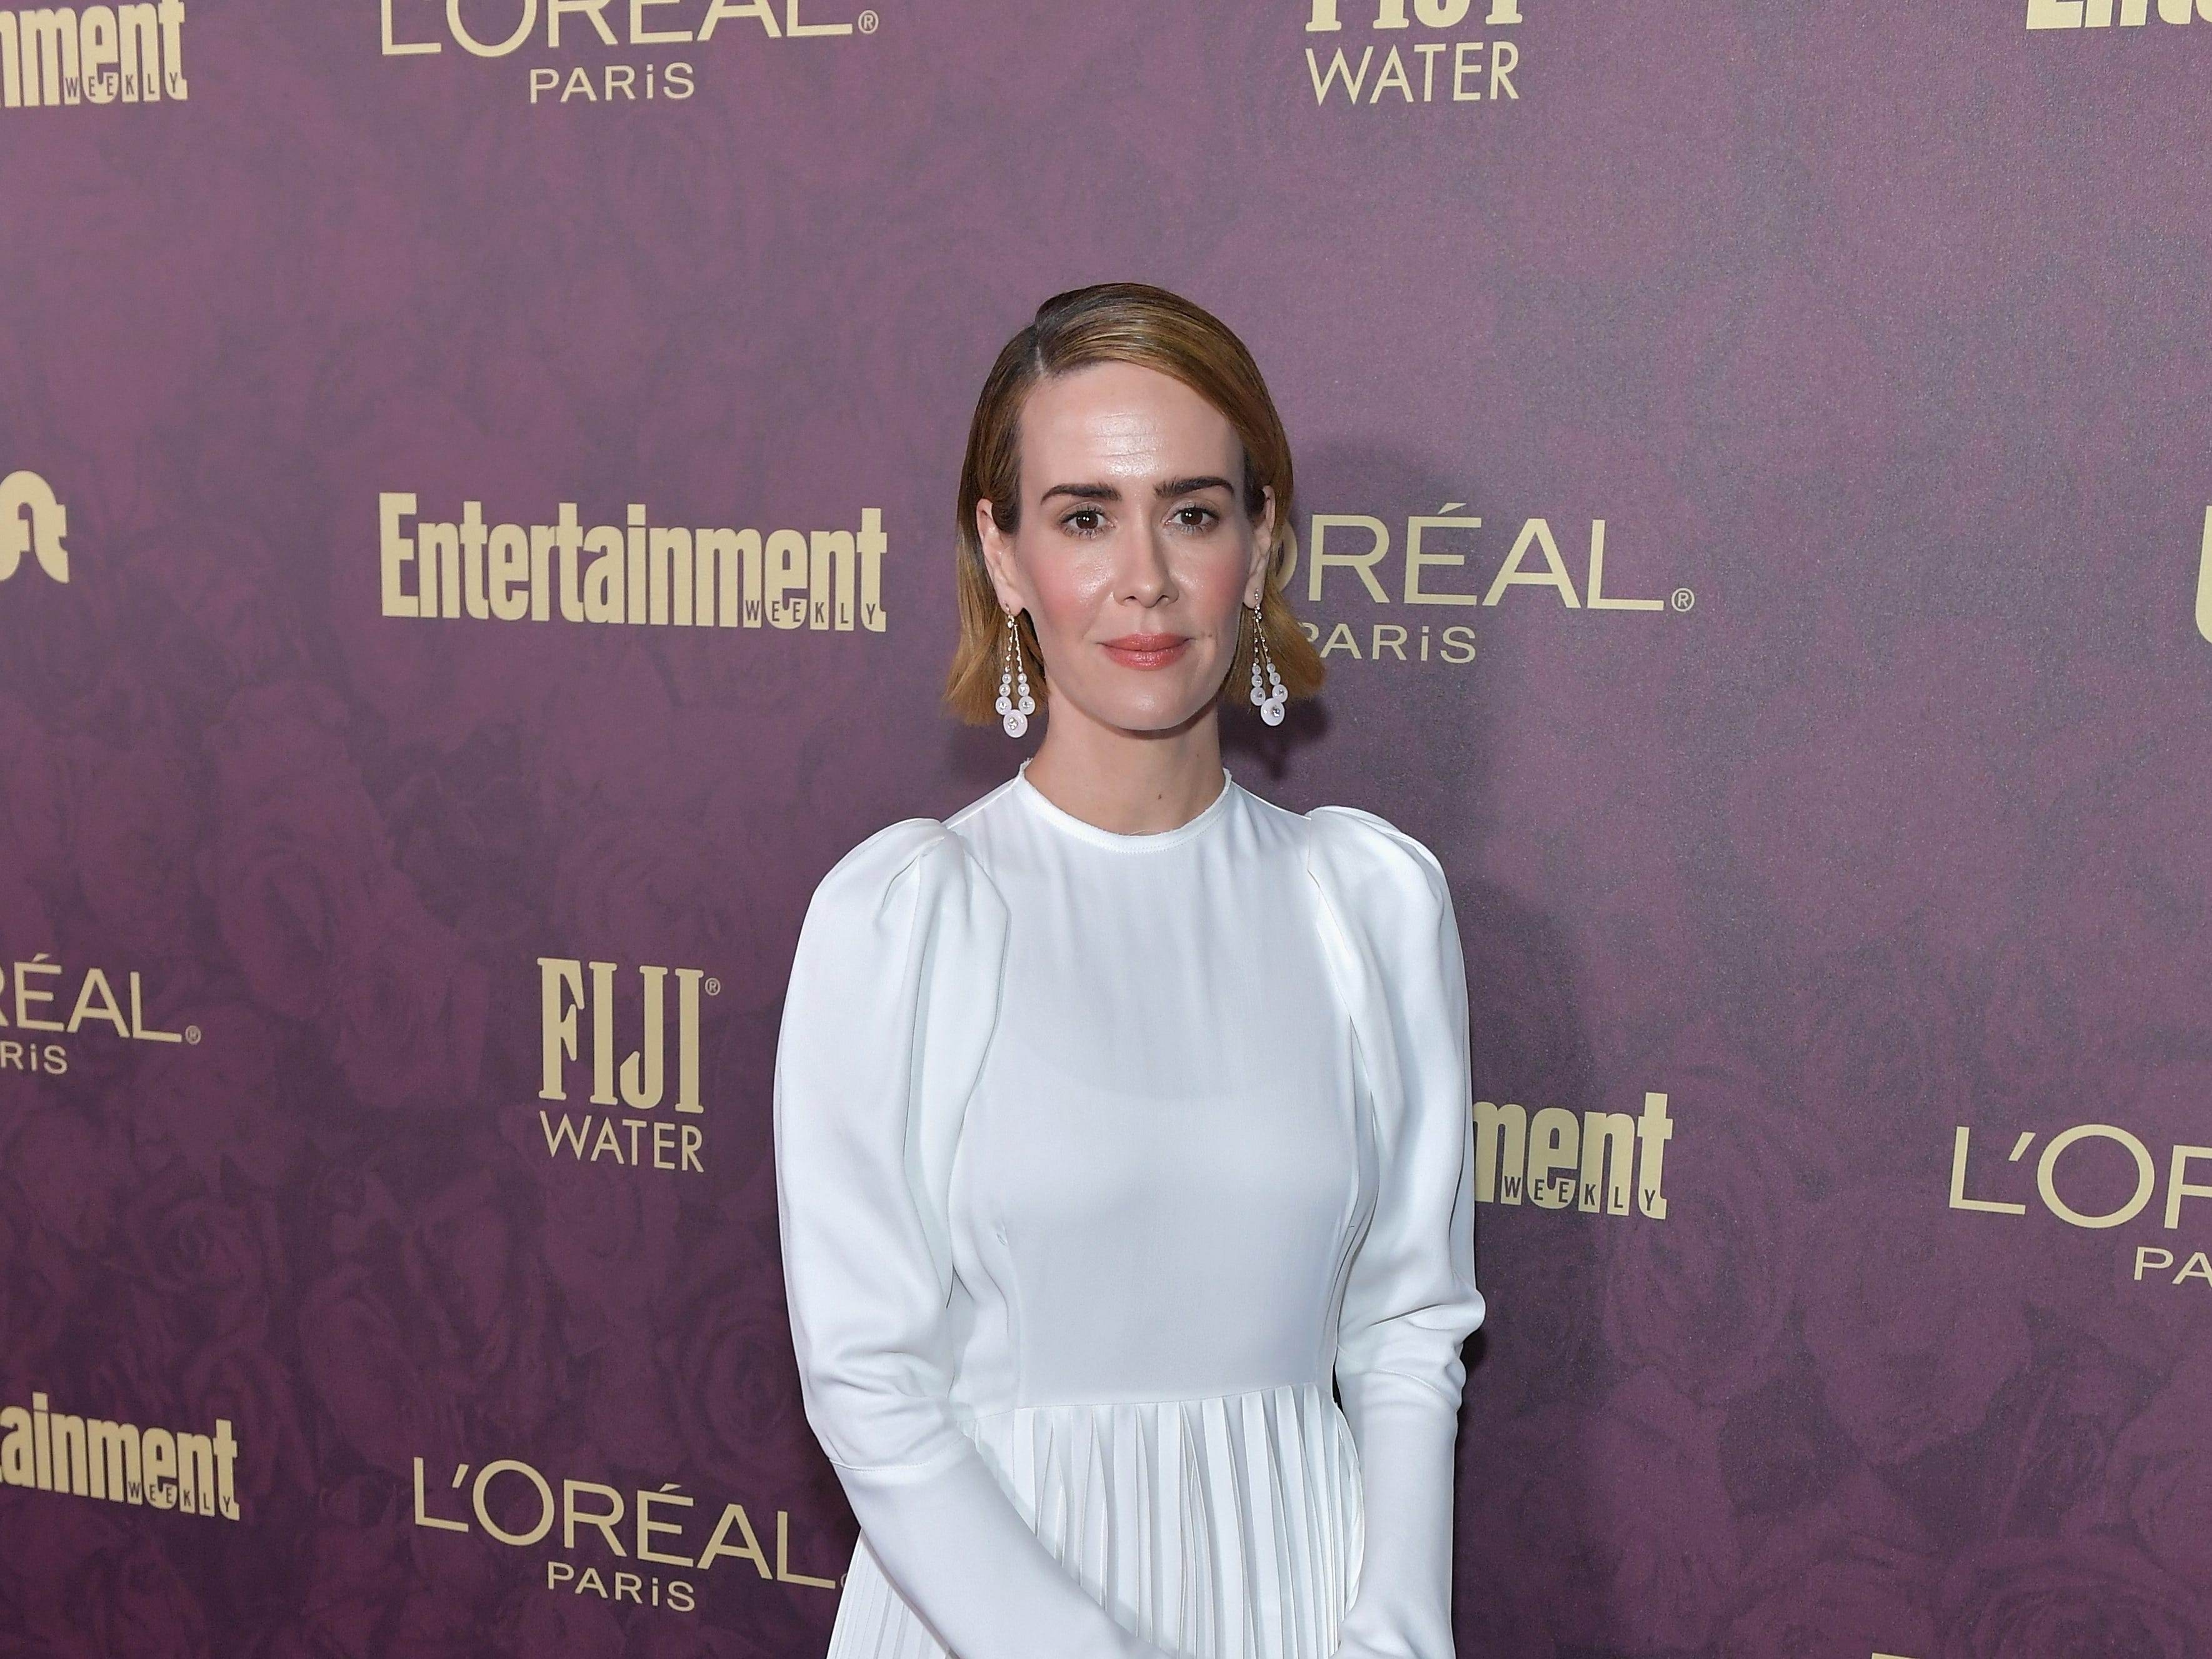 LOS ANGELES, CA - SEPTEMBER 15:  Sarah Paulson attends the 2018 Pre-Emmy Party hosted by Entertainment Weekly and L'Oreal Paris at Sunset Tower on September 15, 2018 in Los Angeles, California.  (Photo by Neilson Barnard/Getty Images for Entertainment Weekly) ORG XMIT: 775214113 ORIG FILE ID: 1033989482